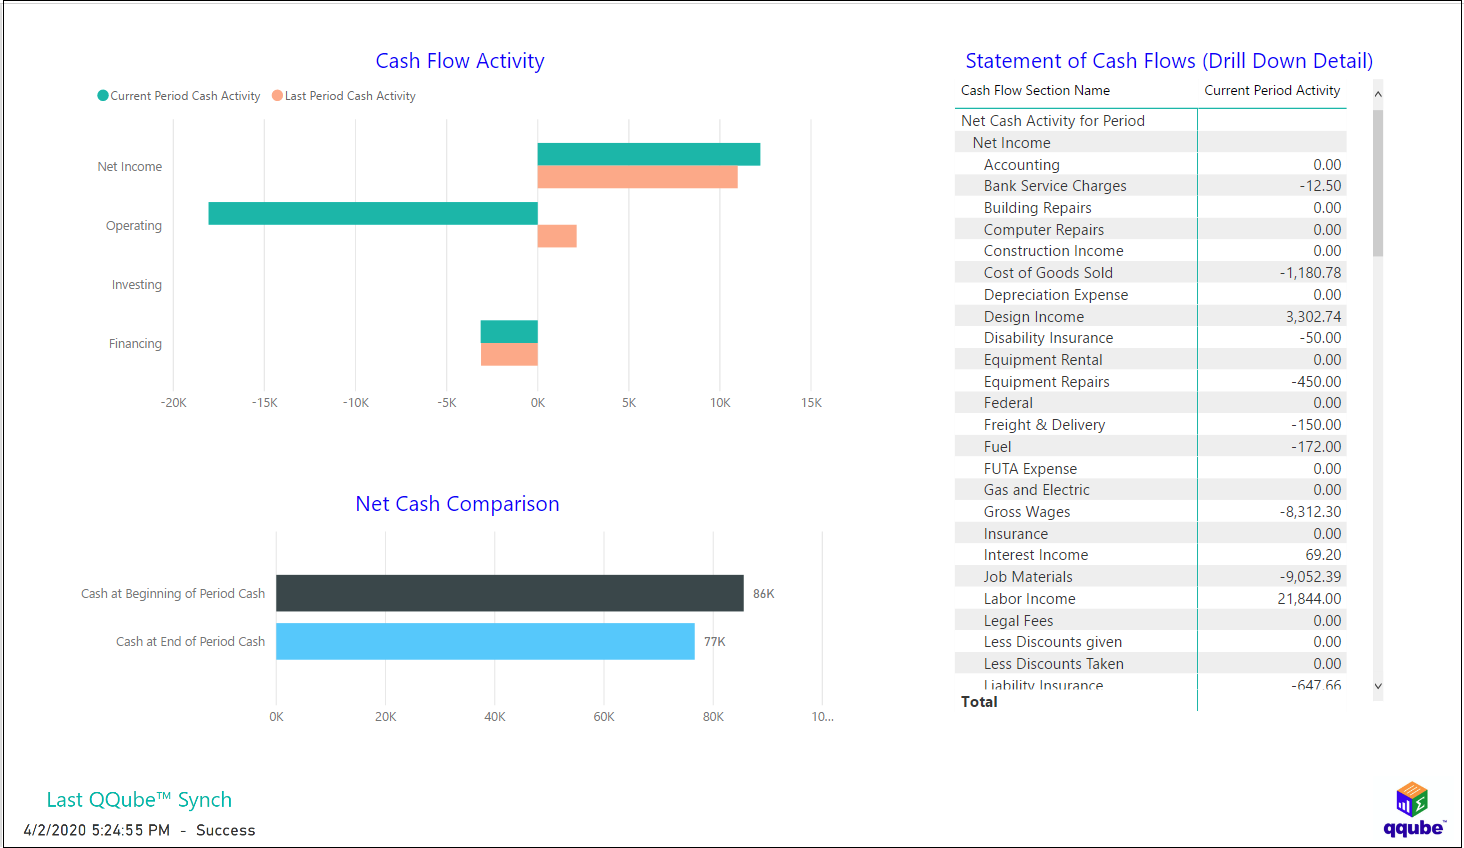 QuickBooks Statement of Cash Flows using QQube with Power BI